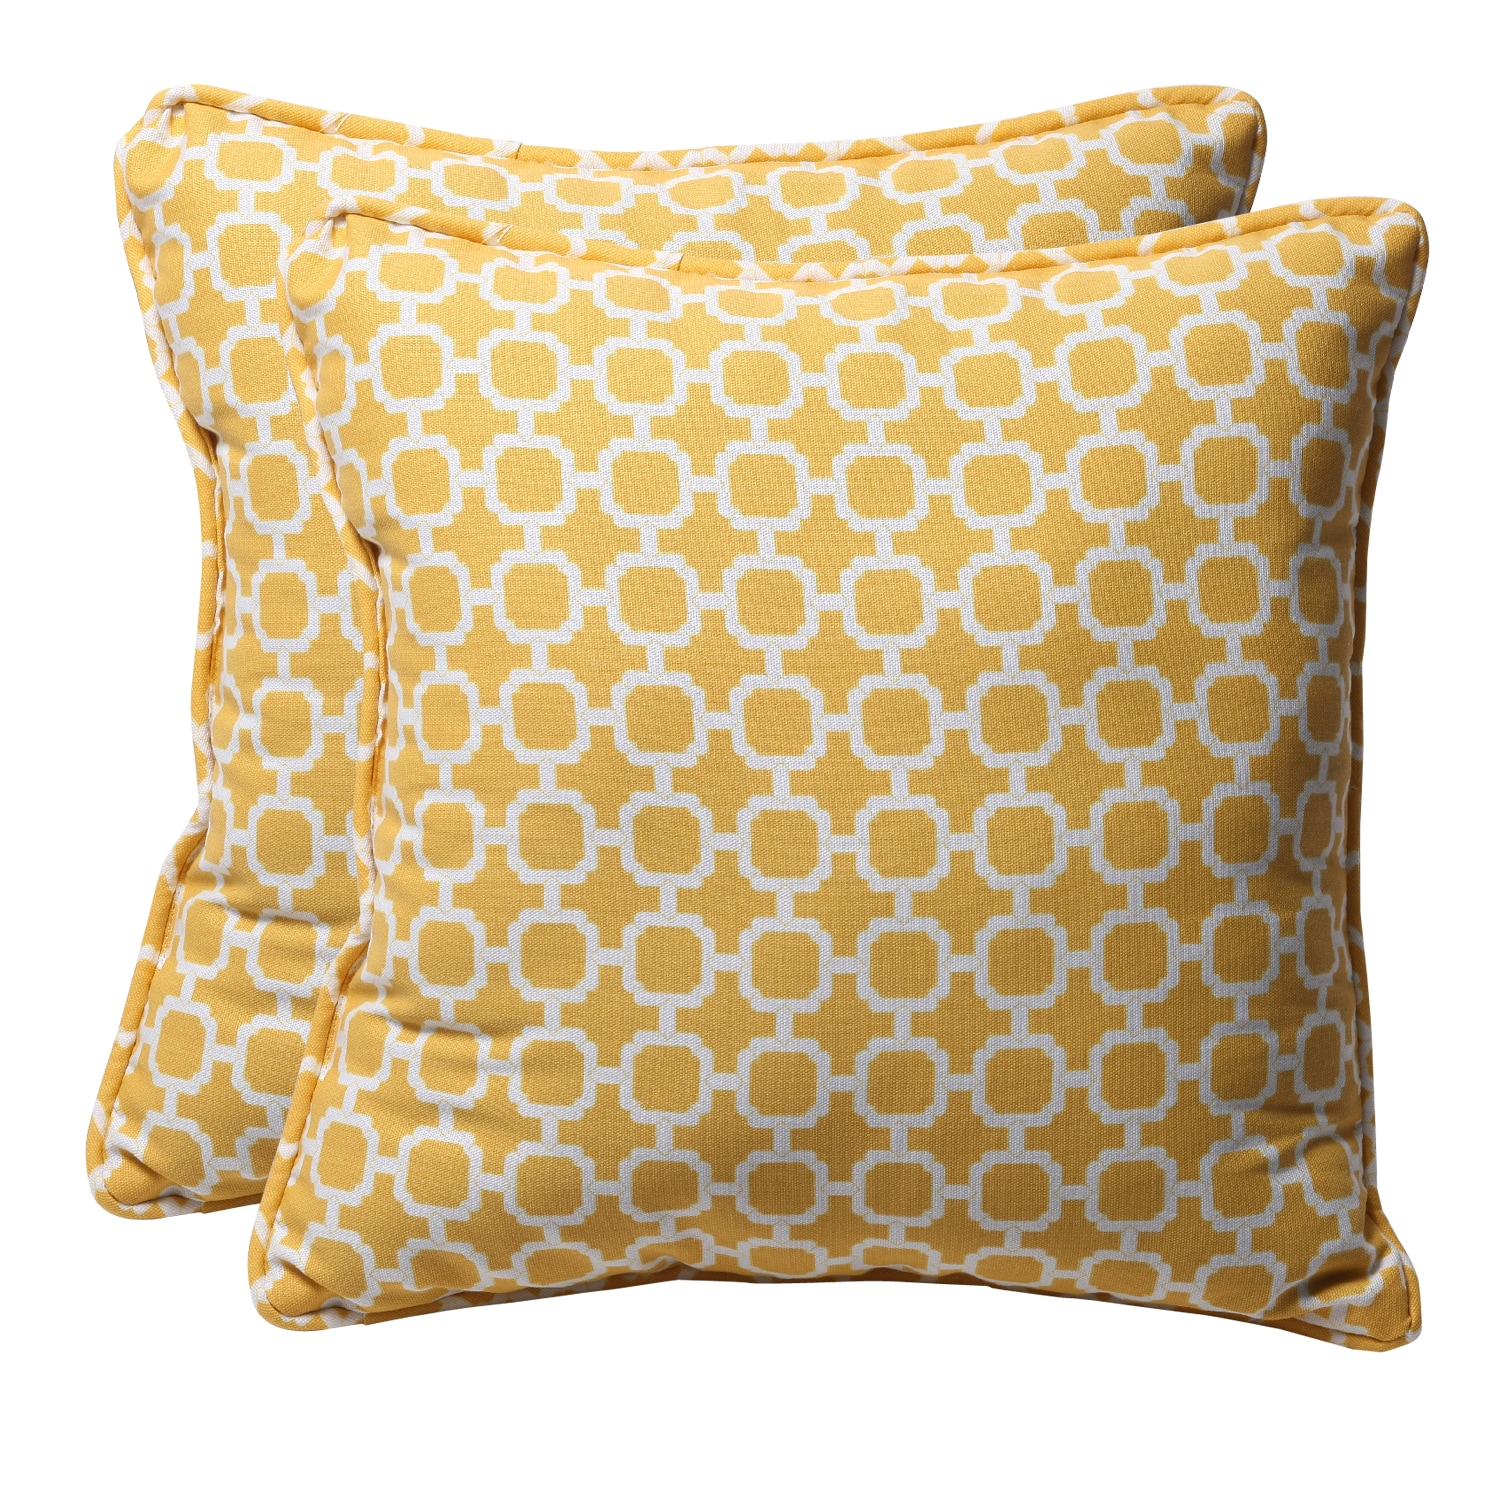 Shop Decorative Yellow White Geometric Square Outdoor